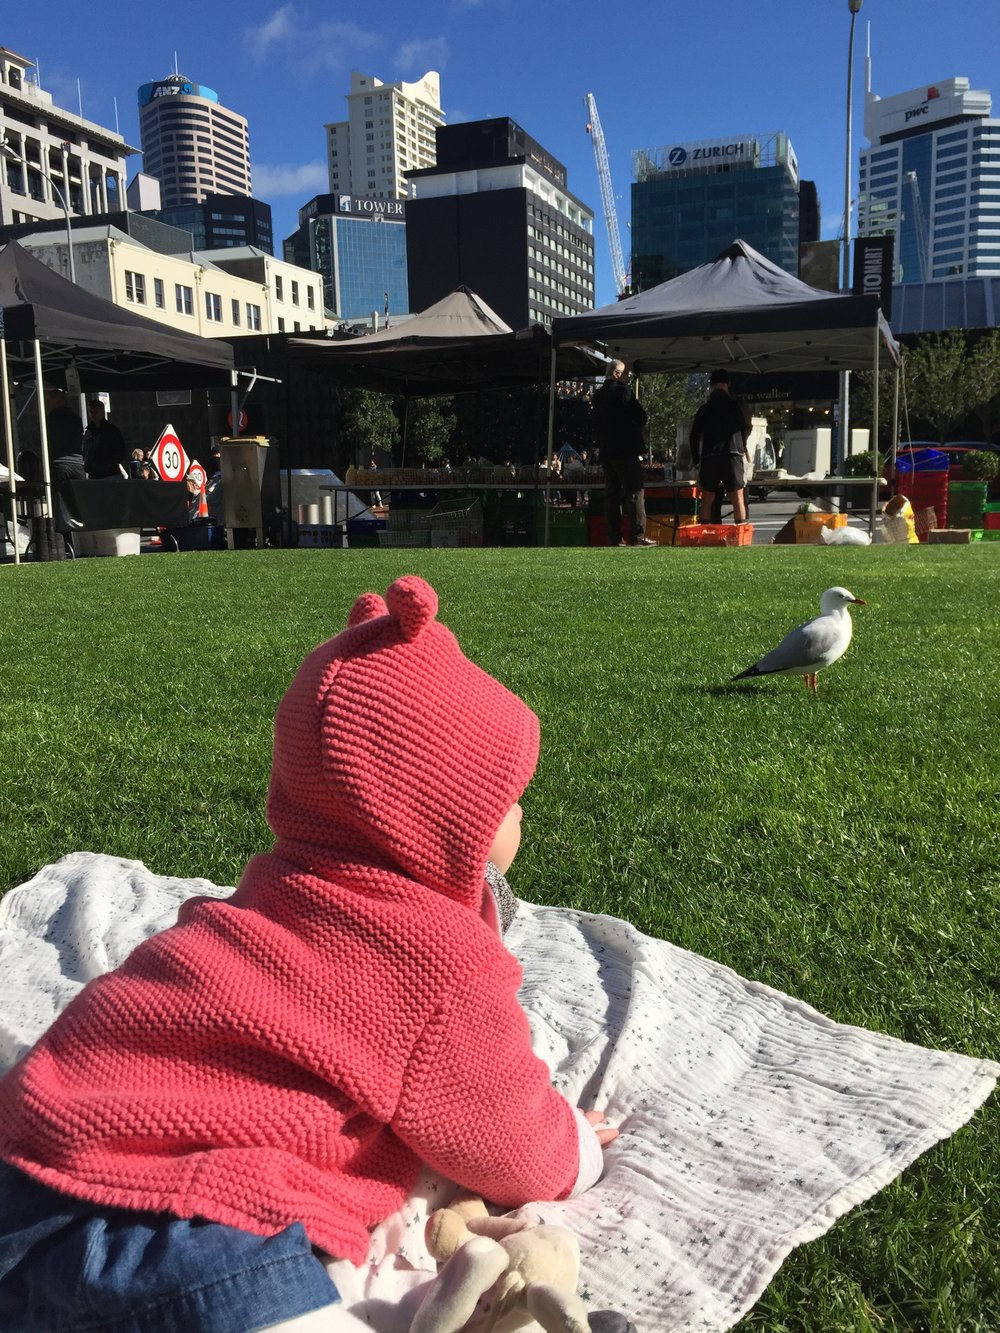 A bit of contrast – the city from down low. Amelie loved watching this bird from the safety of her makeshift picnic blanket.